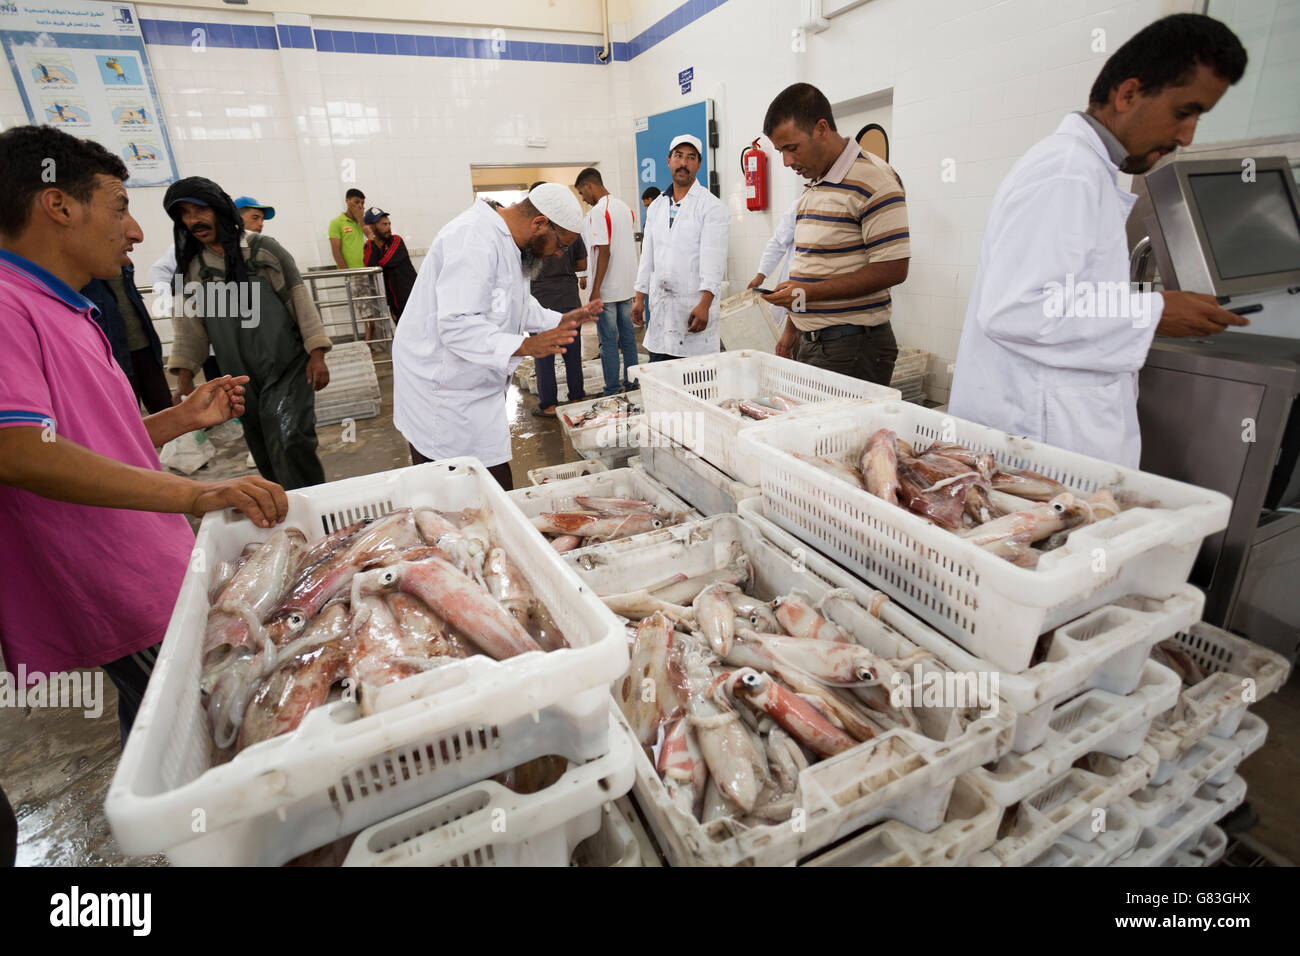 Workers buy and sell fresh seafood and fish at auction in Tifnit, near Agadir, in Morocco. - Stock Image